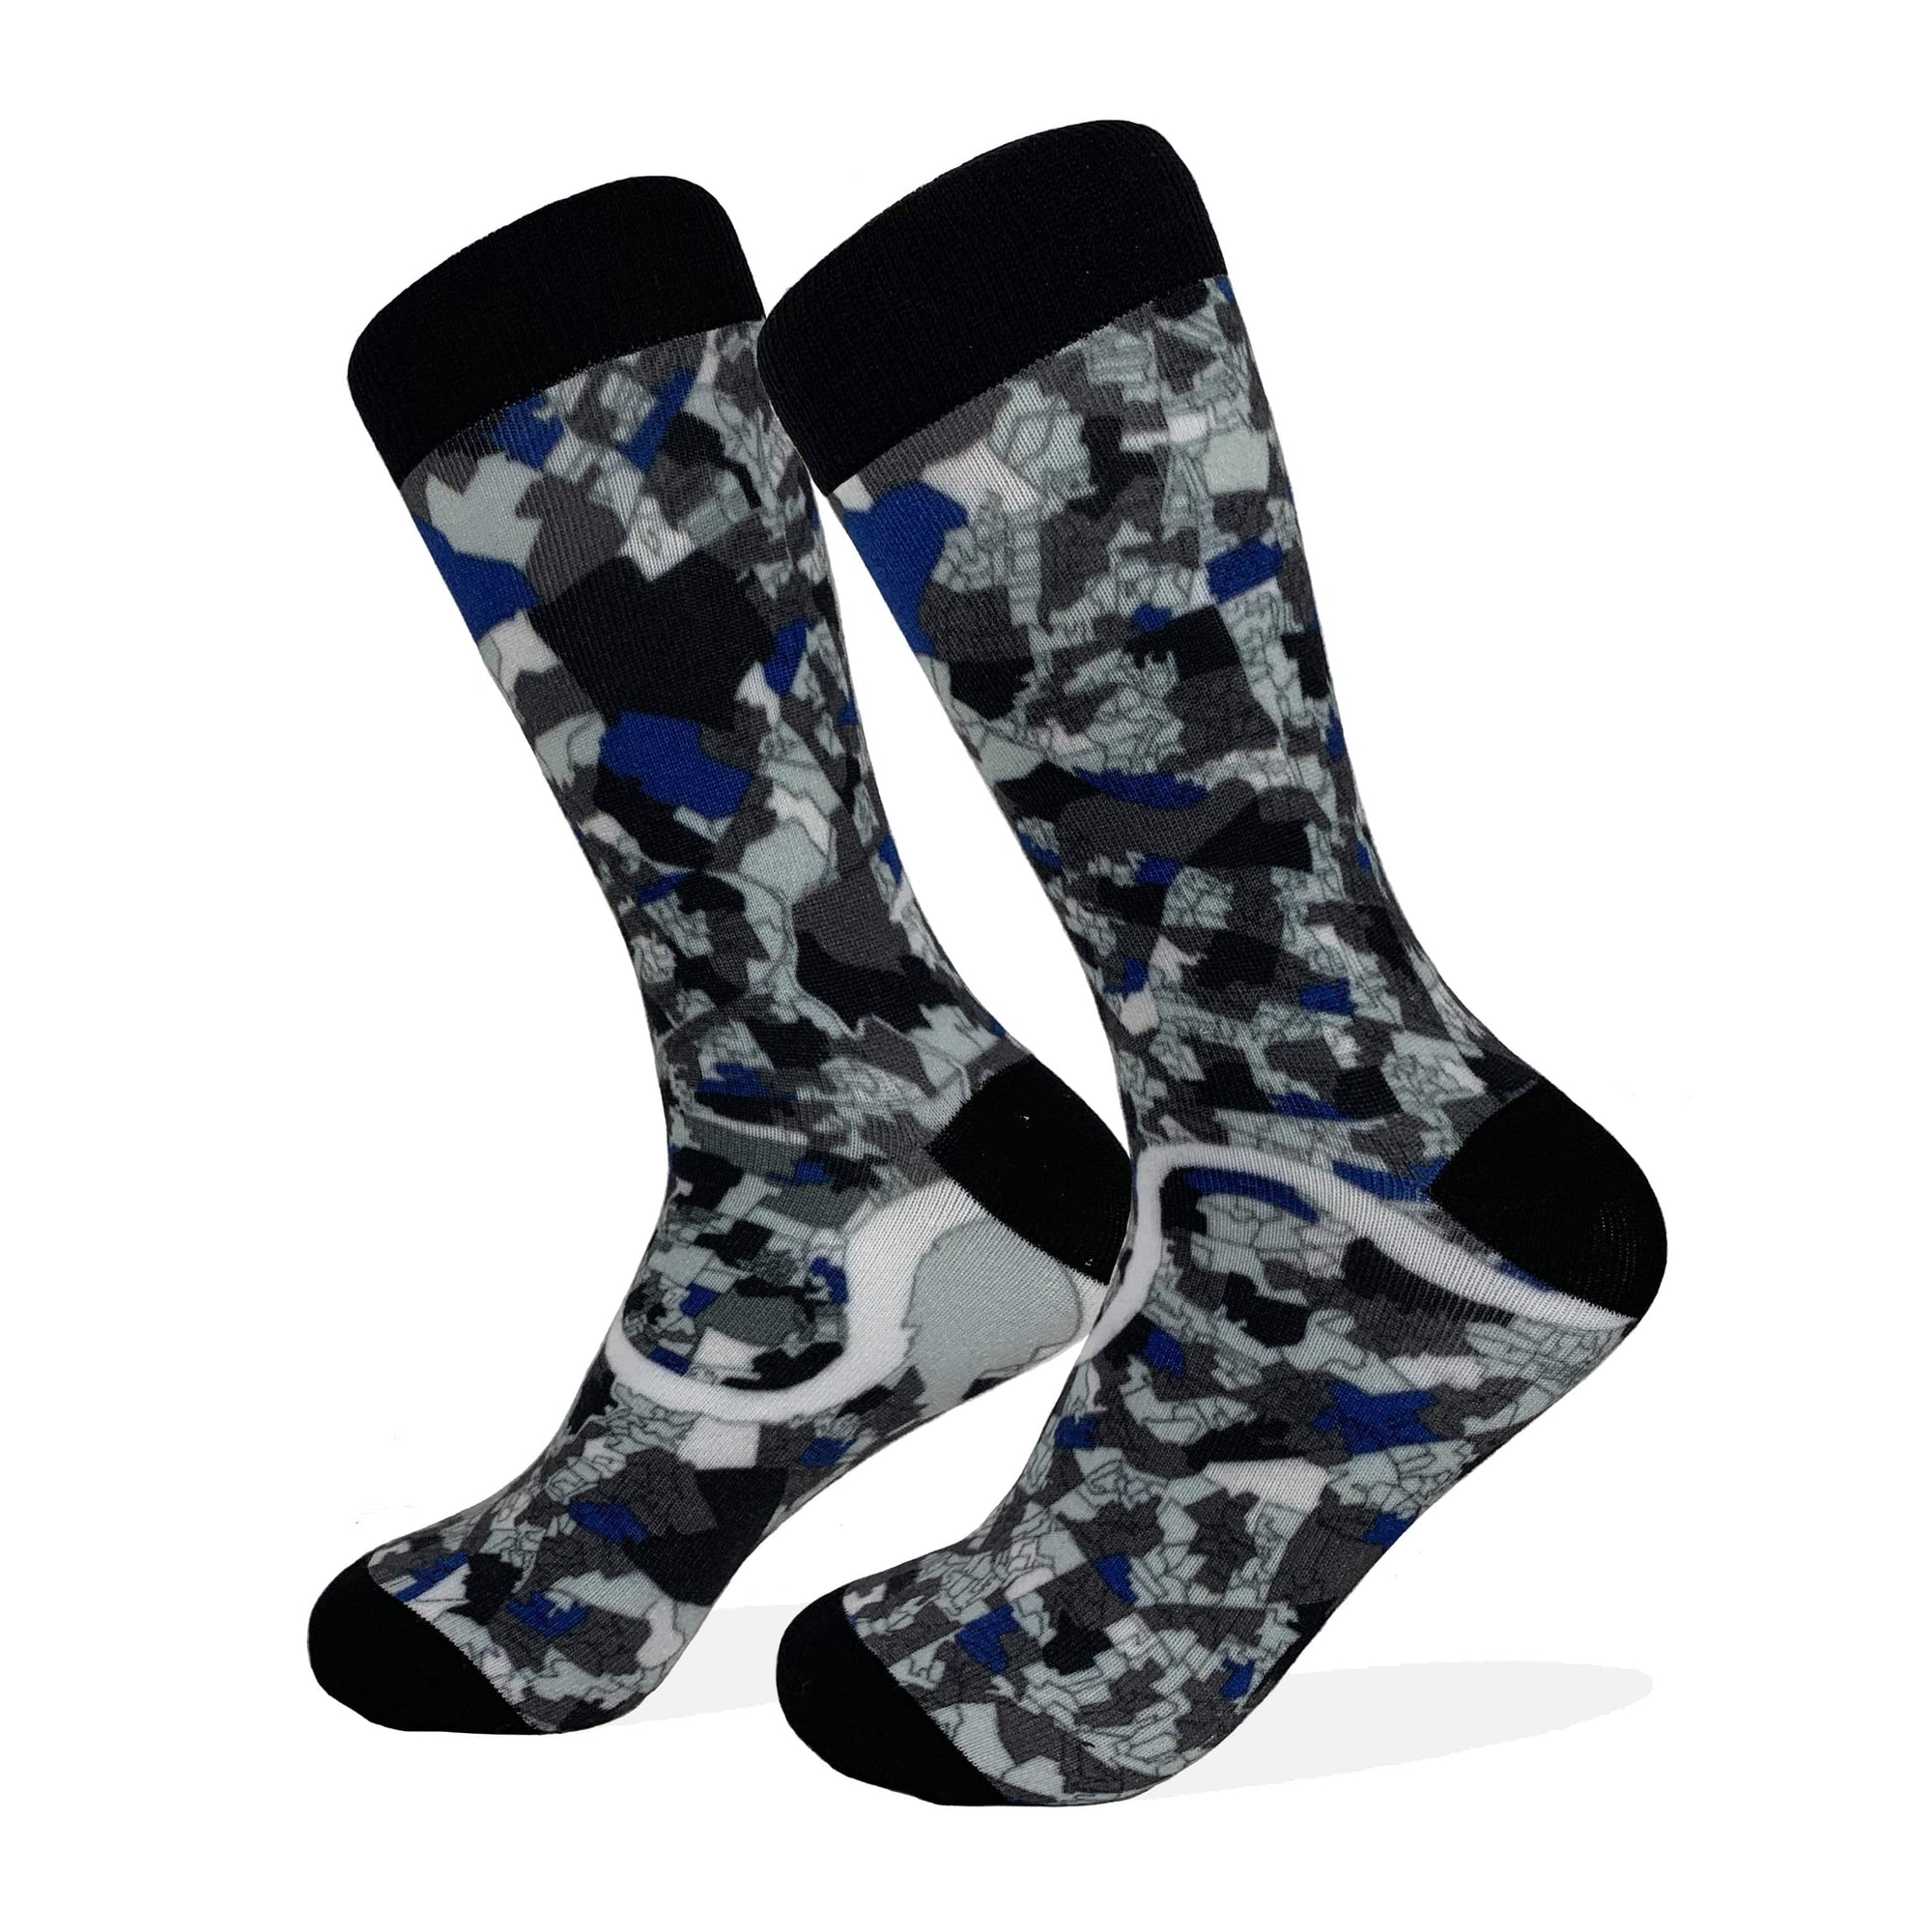 London Map Socks | Colorful & Funky Socks | Grey & Blue